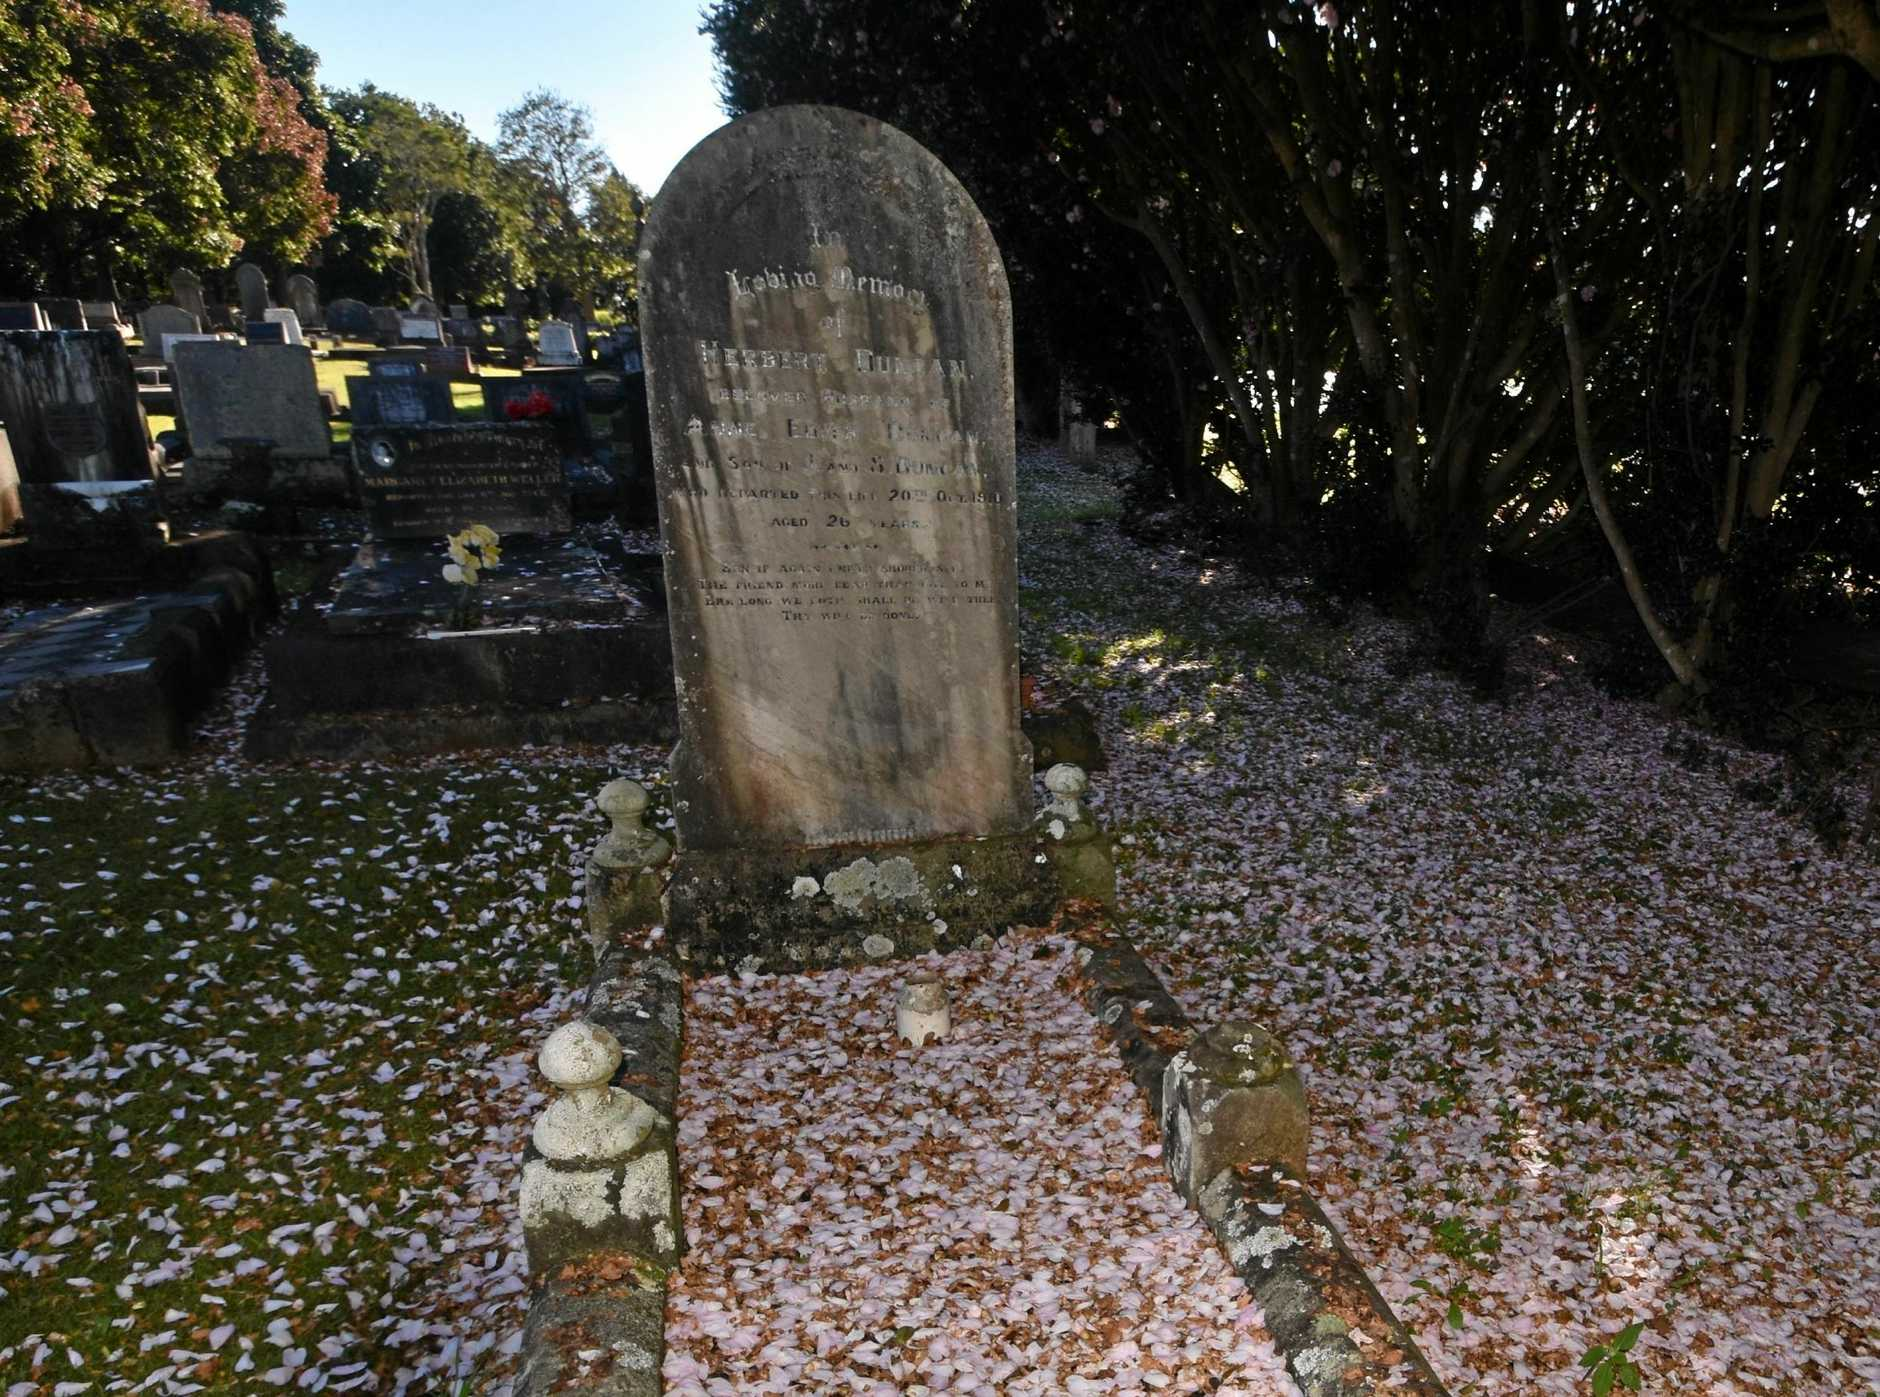 The engraving is fading on the life of Mr Herbert Duncan, at his grave in Alstonville cemetery.